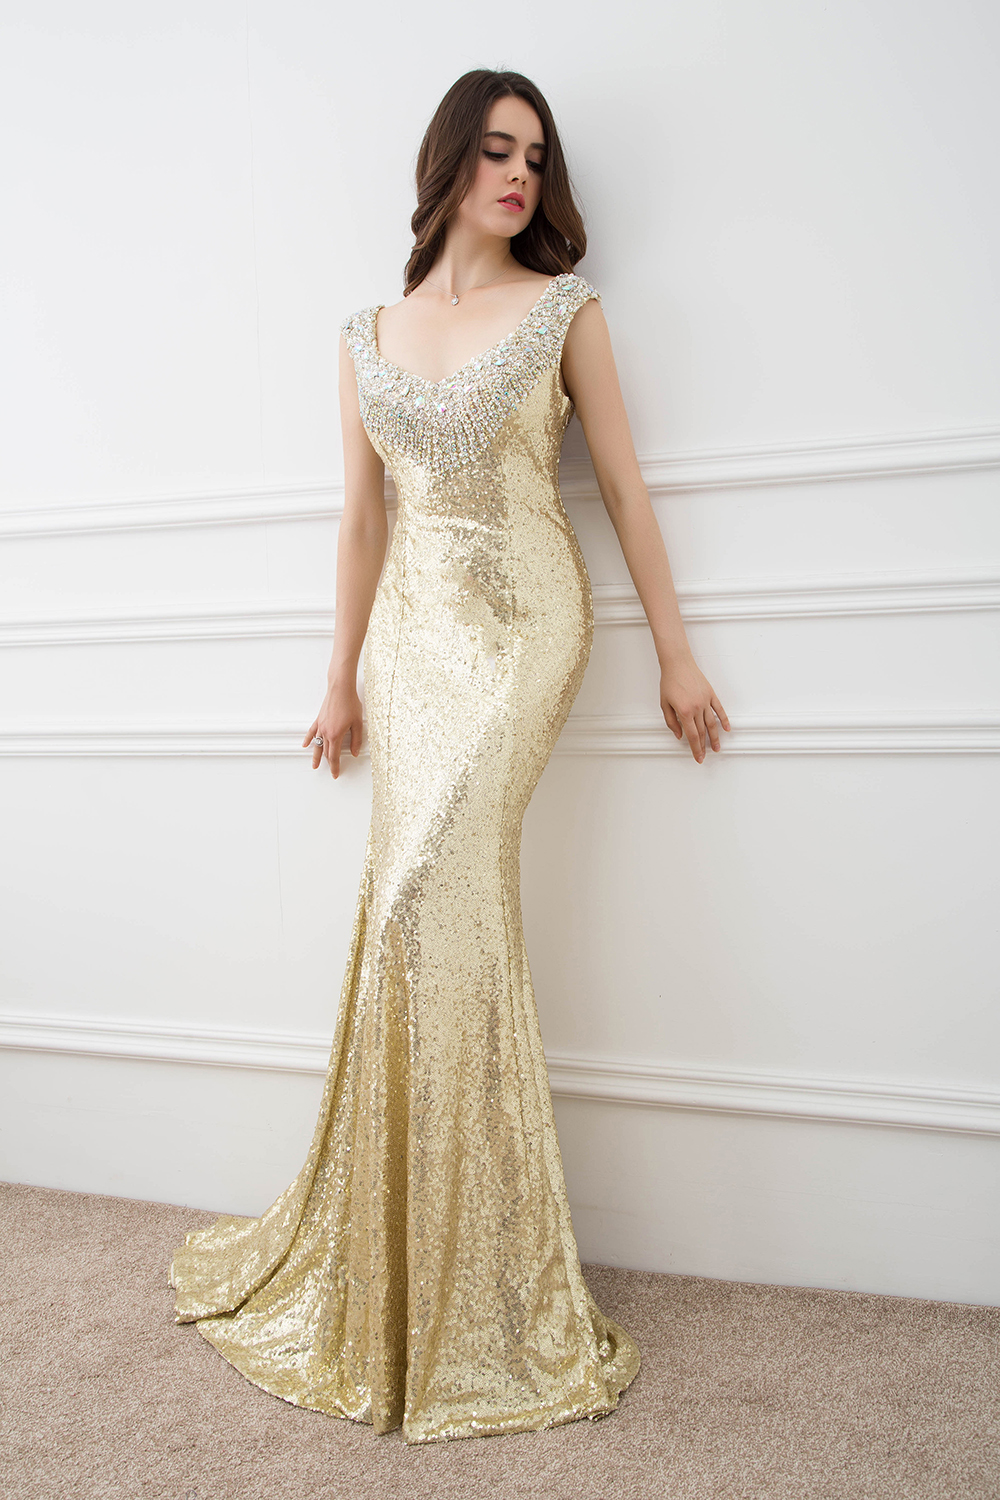 2019 Gold Sequin Prom Dresses with Crystal Beaded Custom made Trumpet Sexy Woman Sheer Back Evening